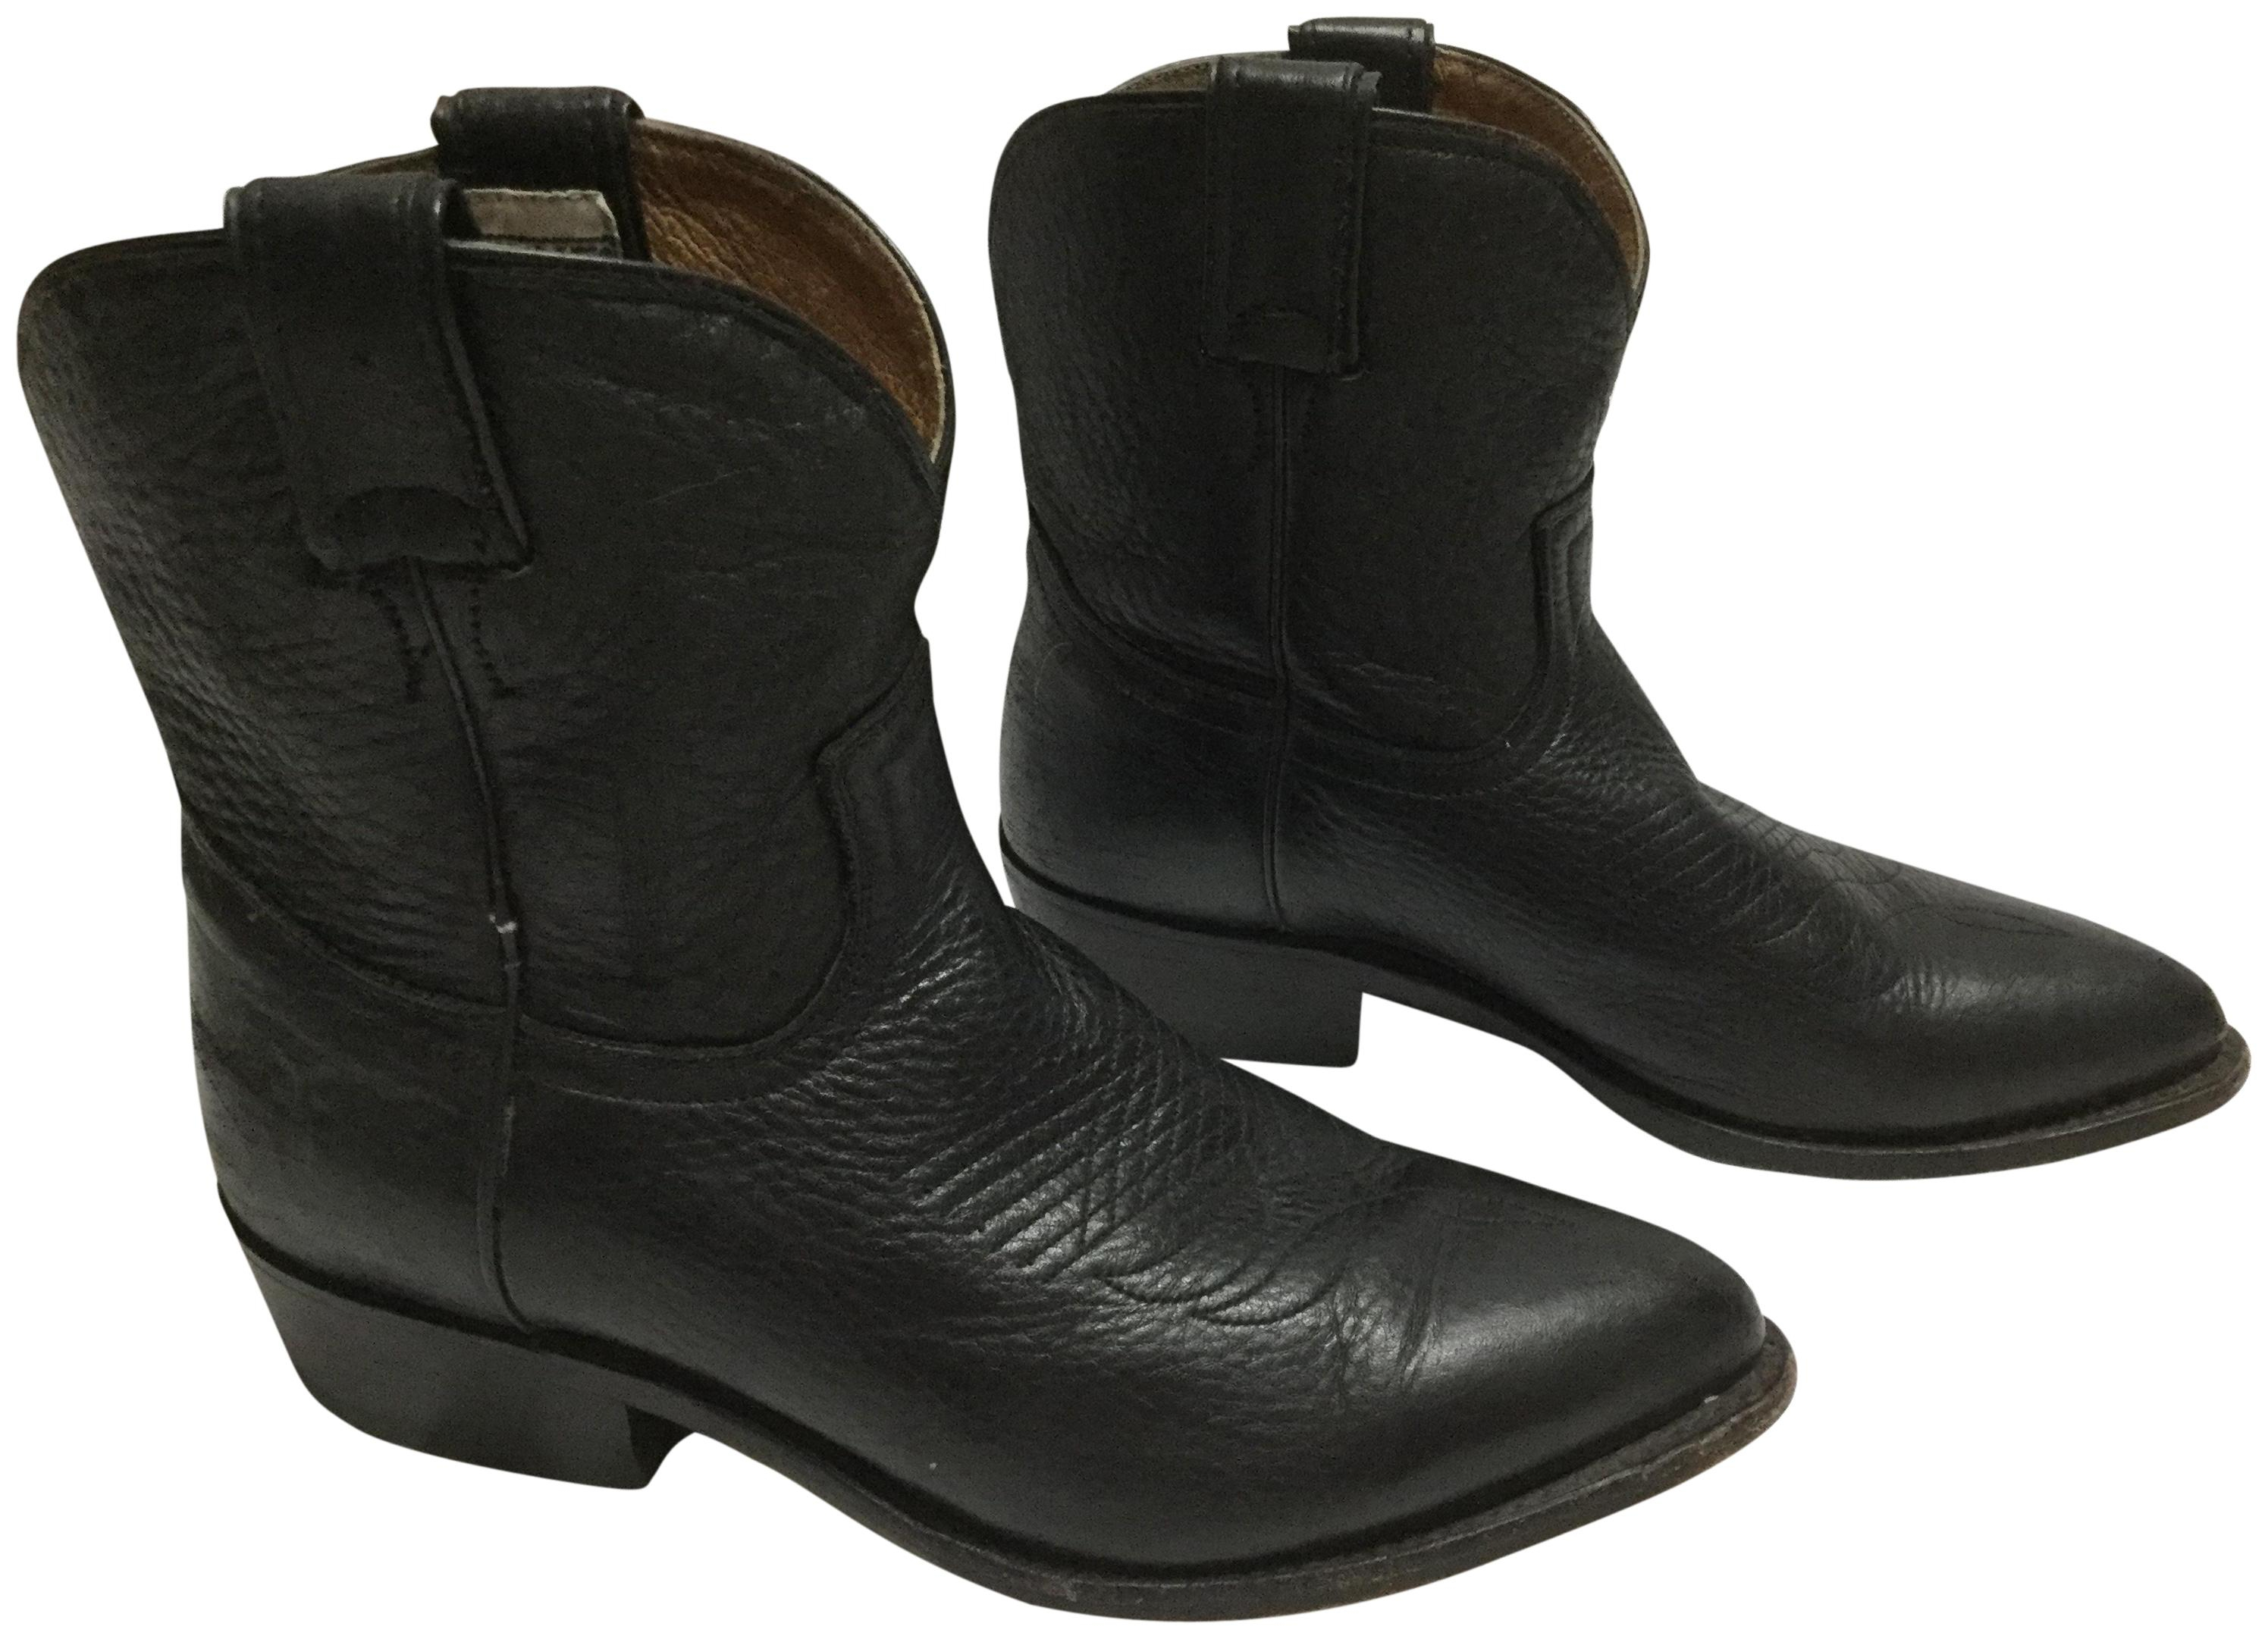 Frye Black Billy Boots/Booties (M, Size US 7.5 Regular (M, Boots/Booties B) 5e82a0